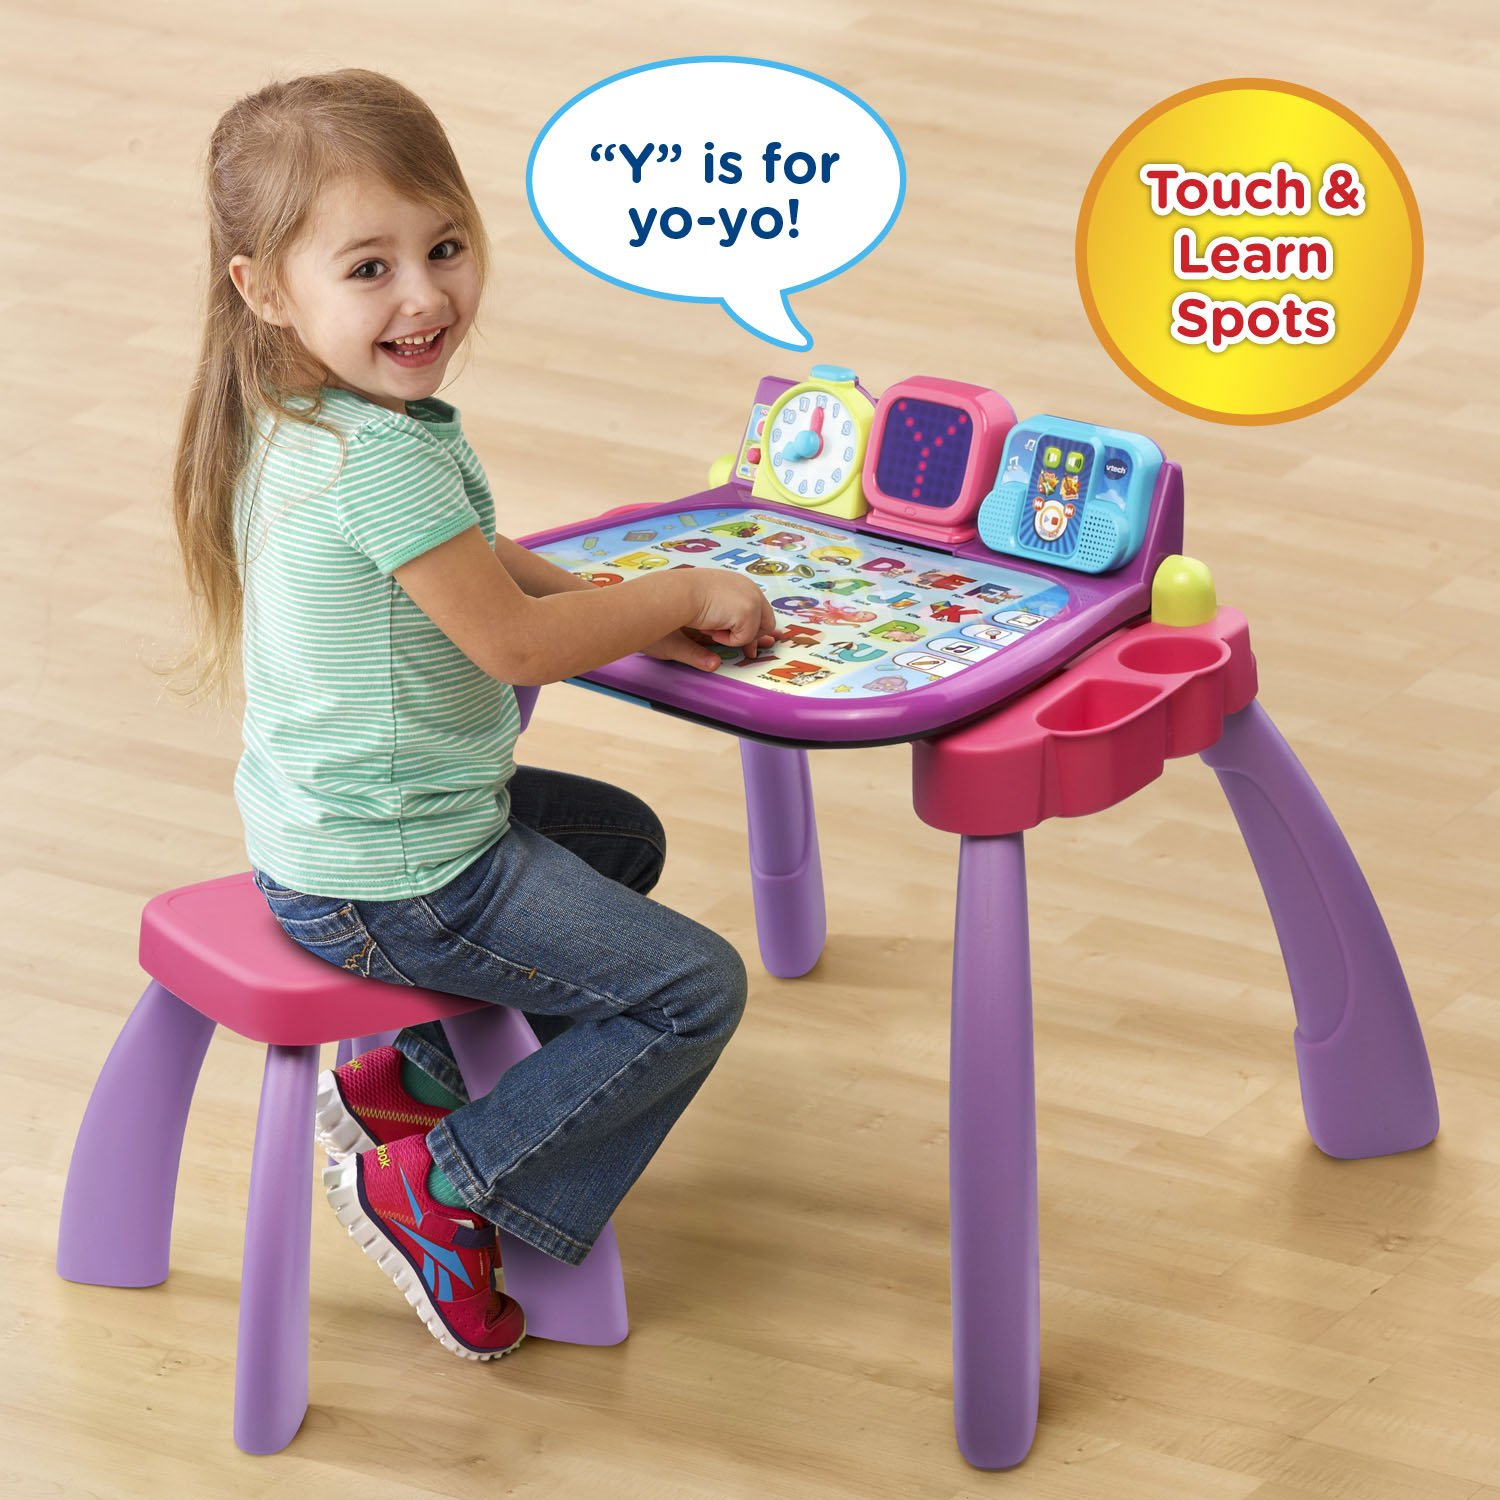 VTech Touch and Learn Activity Desk, Purple by VTech (Image #3)